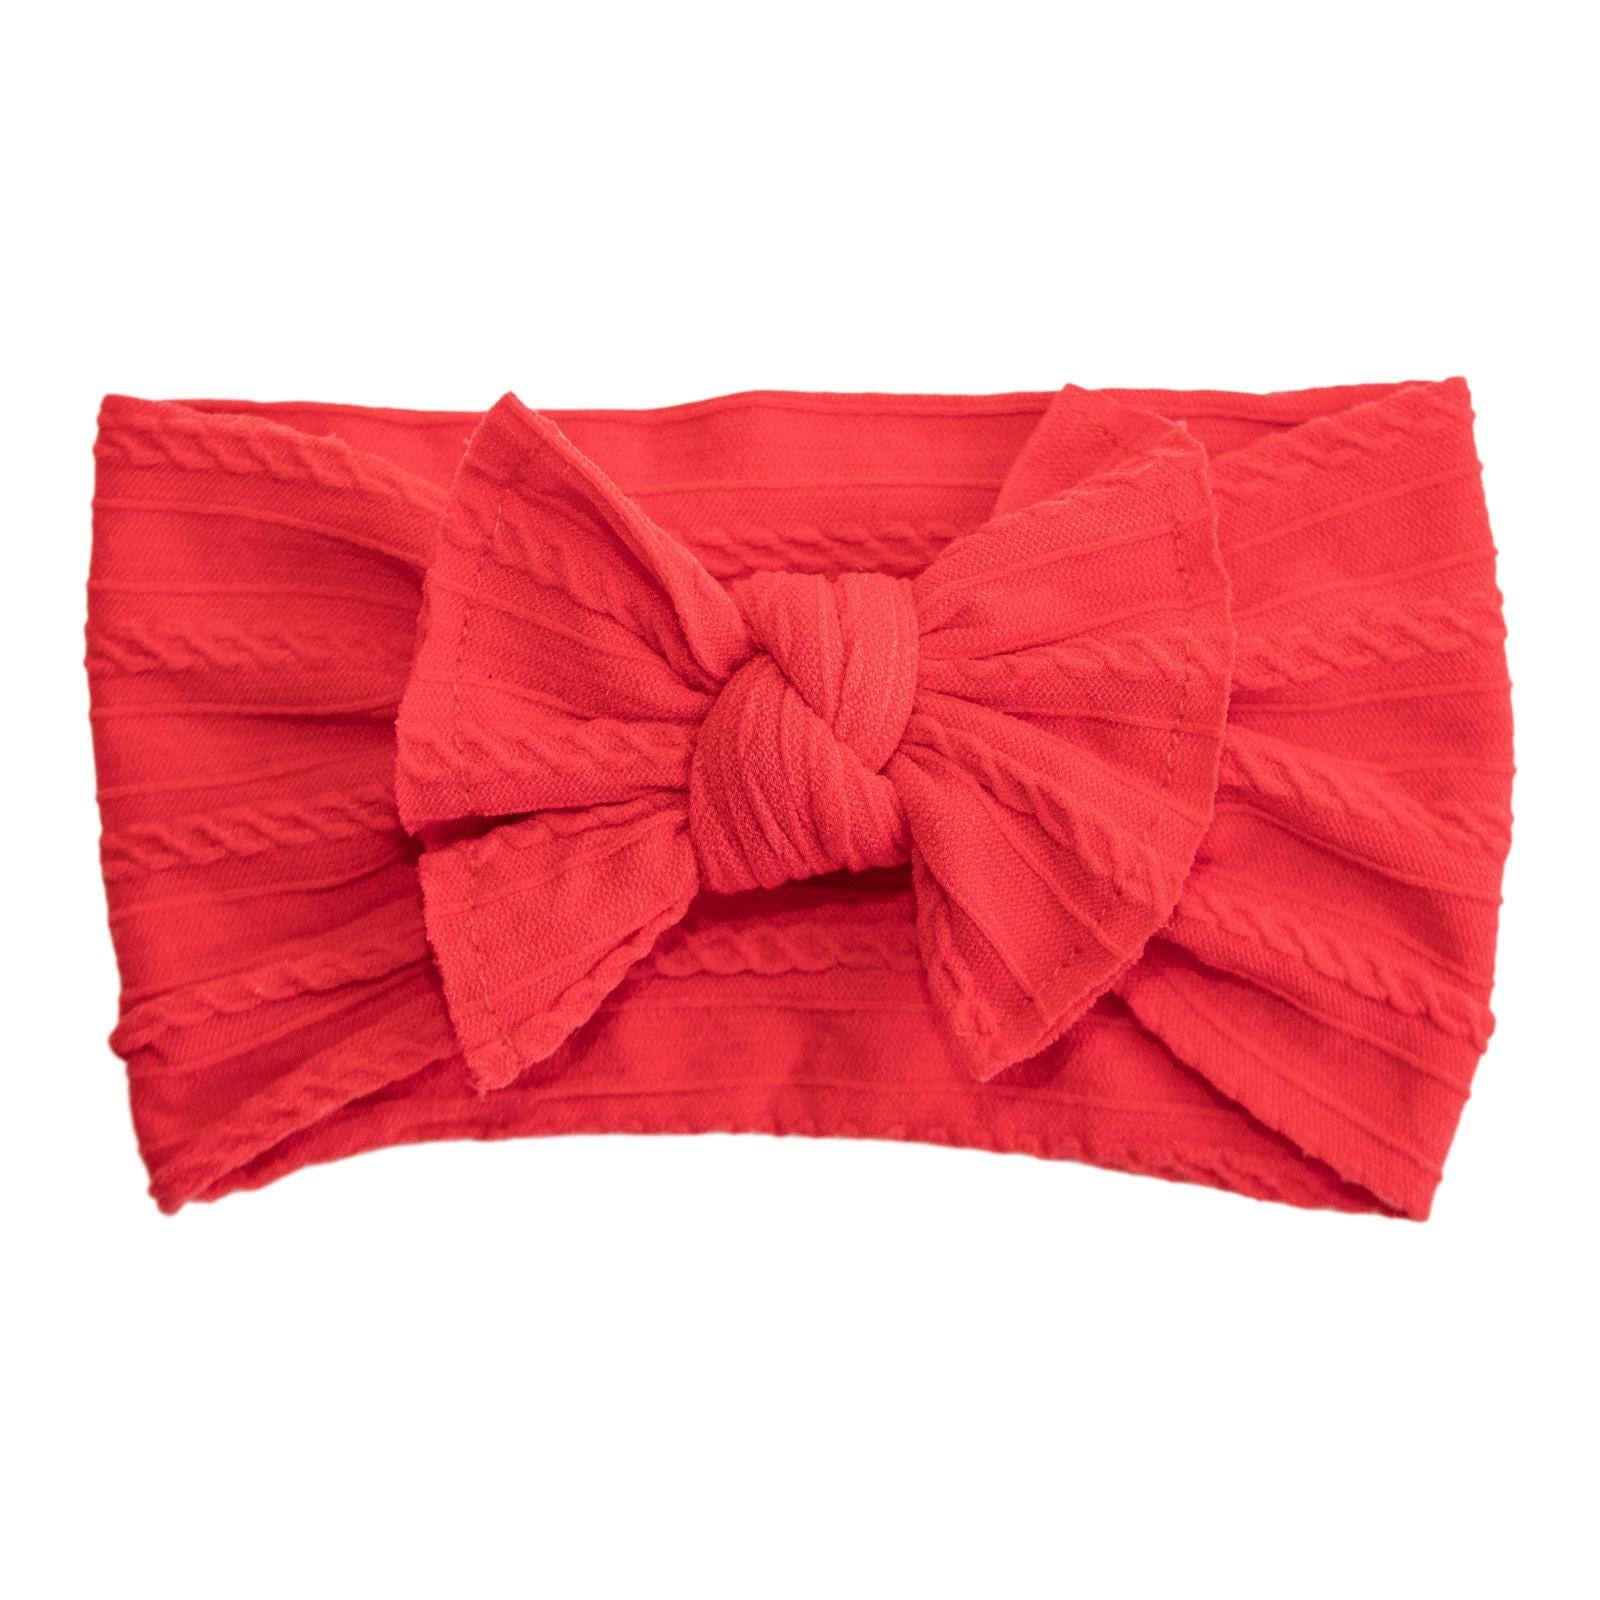 Ladybug Red Cable Knit Nylon Headwrap-Mila & Rose ®